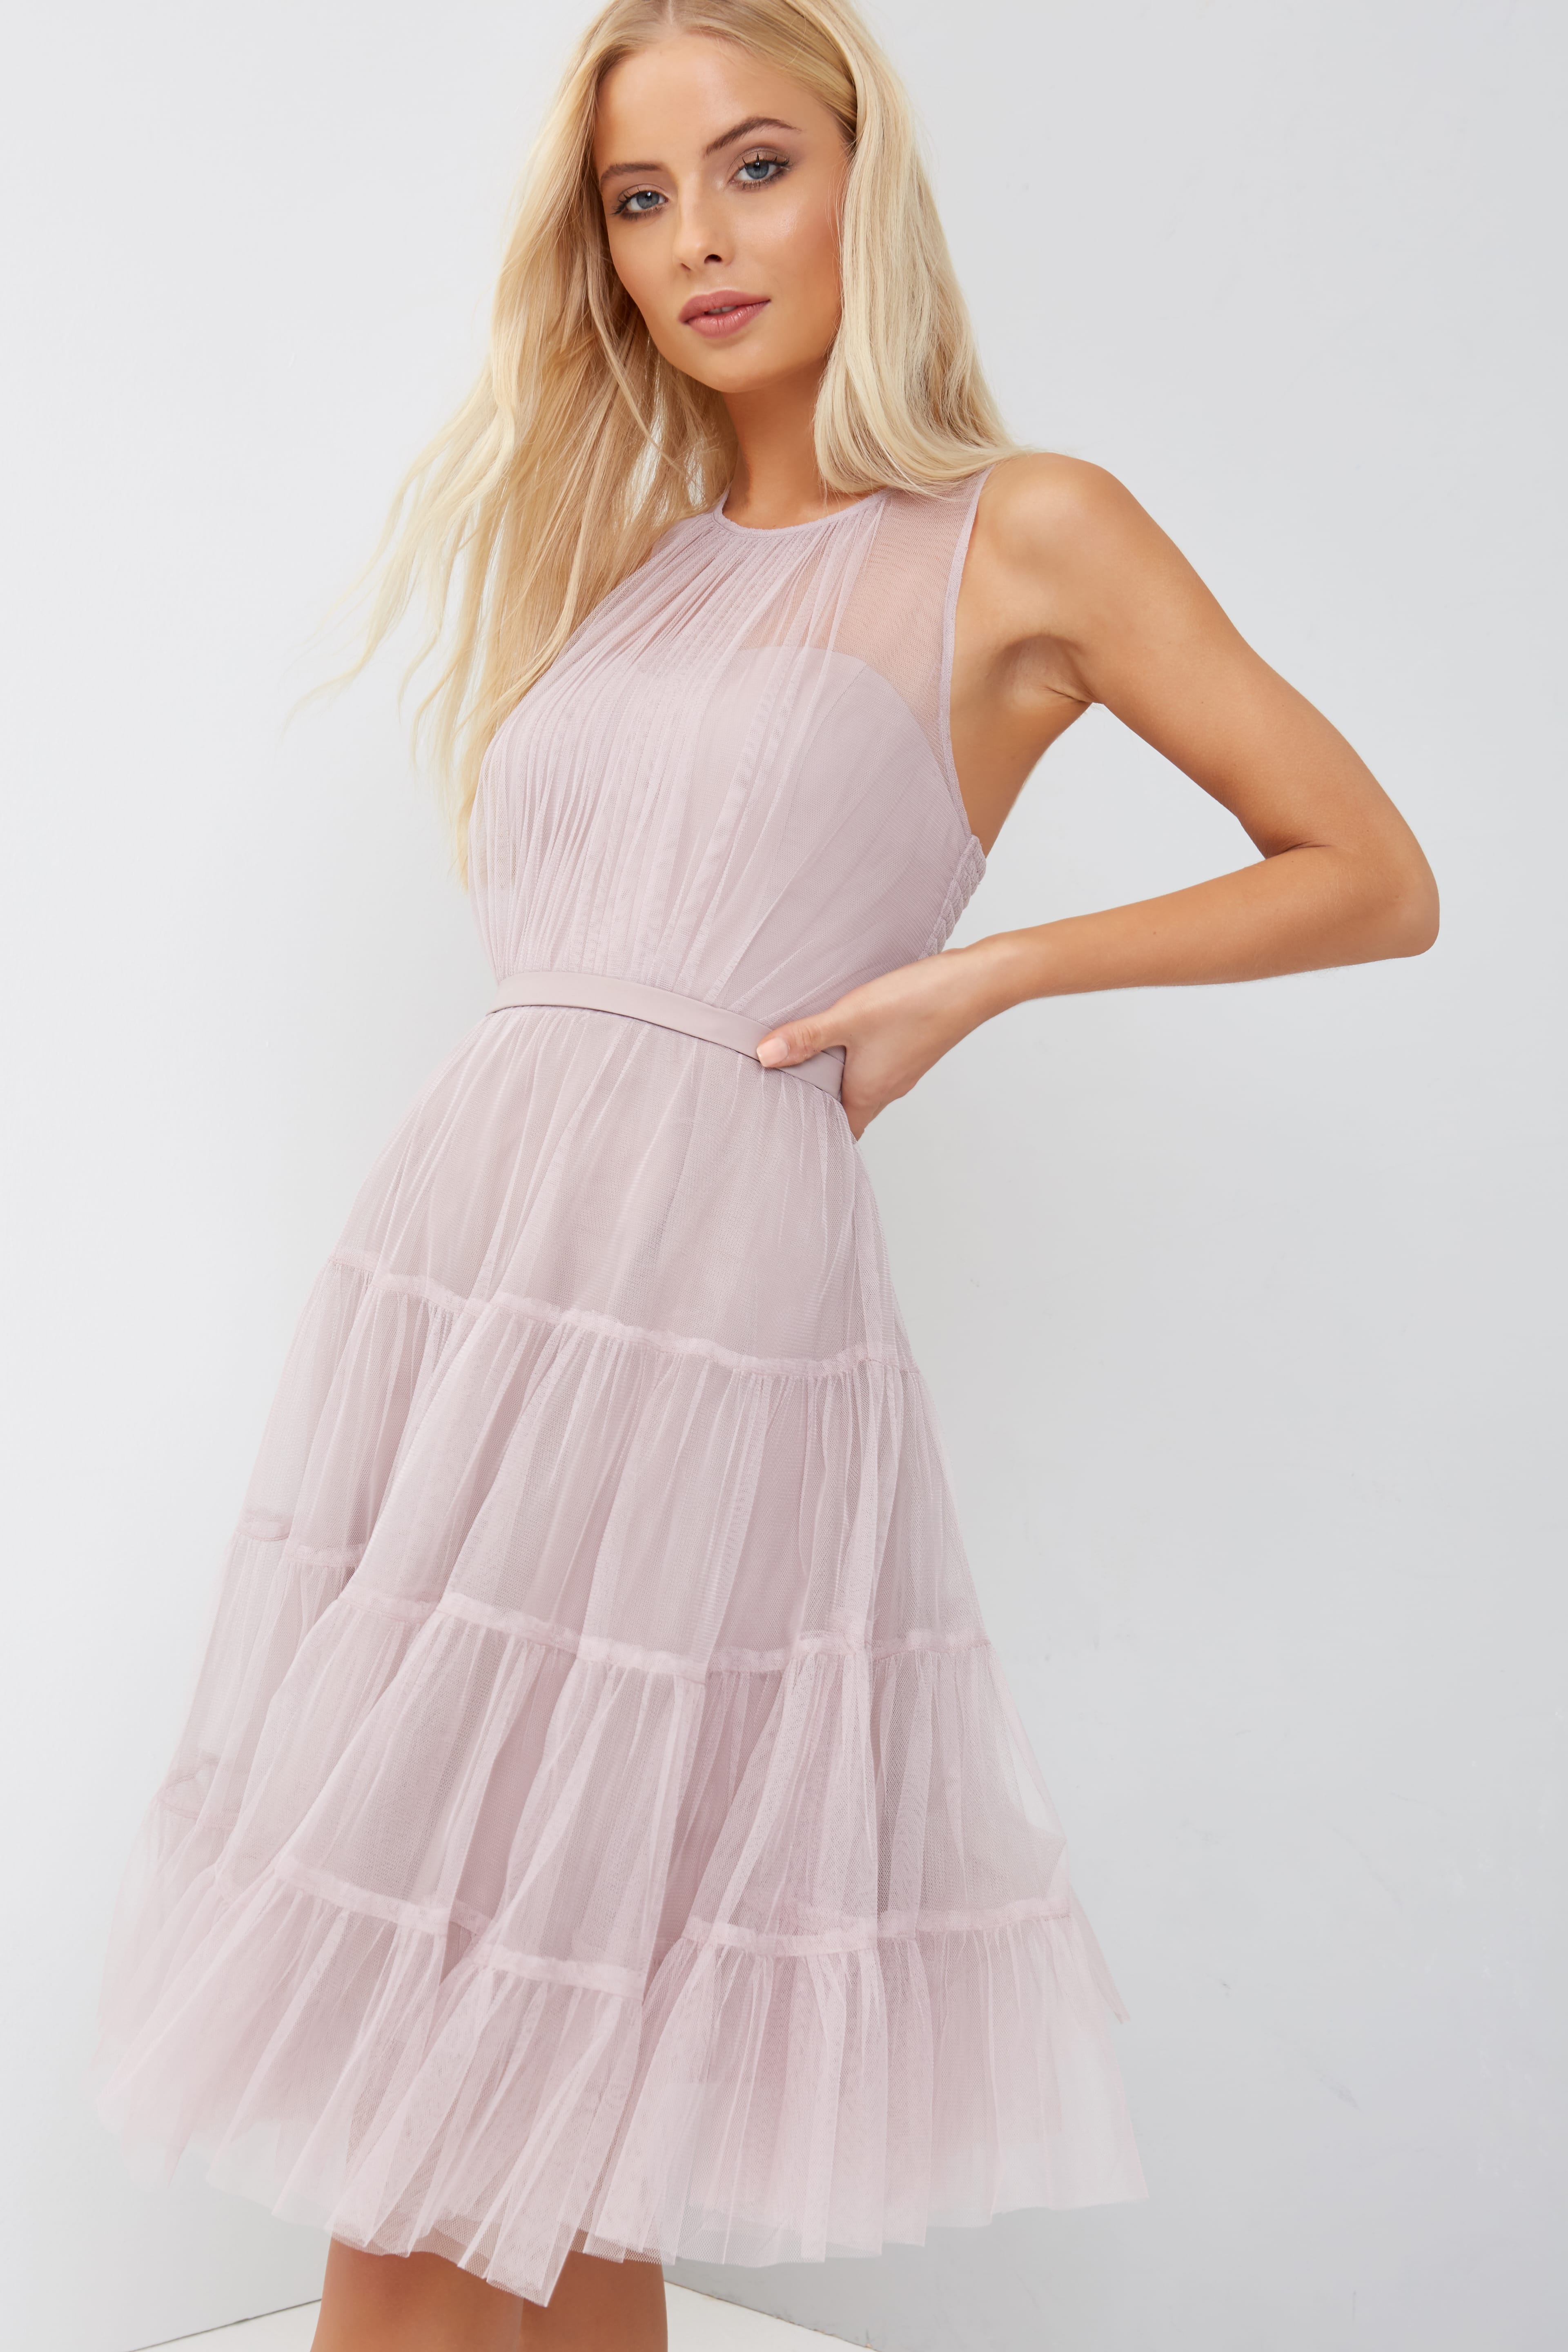 Get Your Dress Game On Point 💖